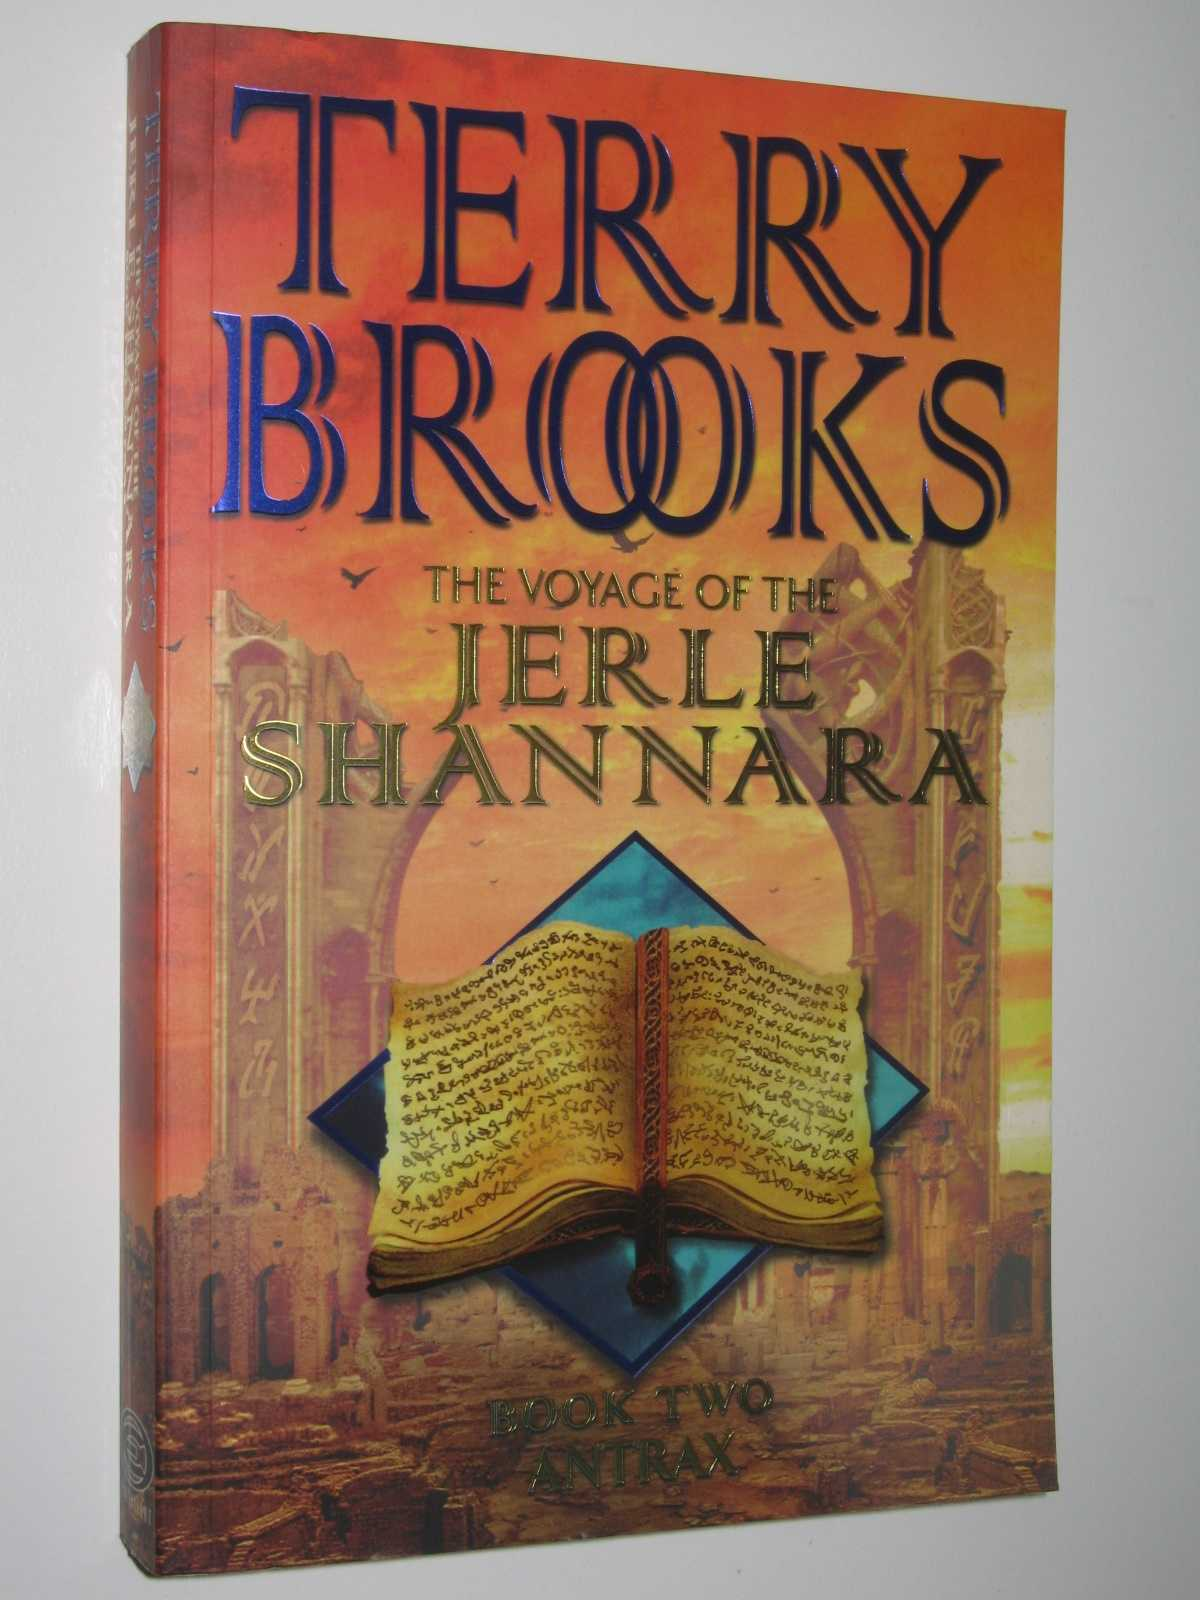 Antrax - The Voyage of the Jerle Shannara #2, Brooks, Terry